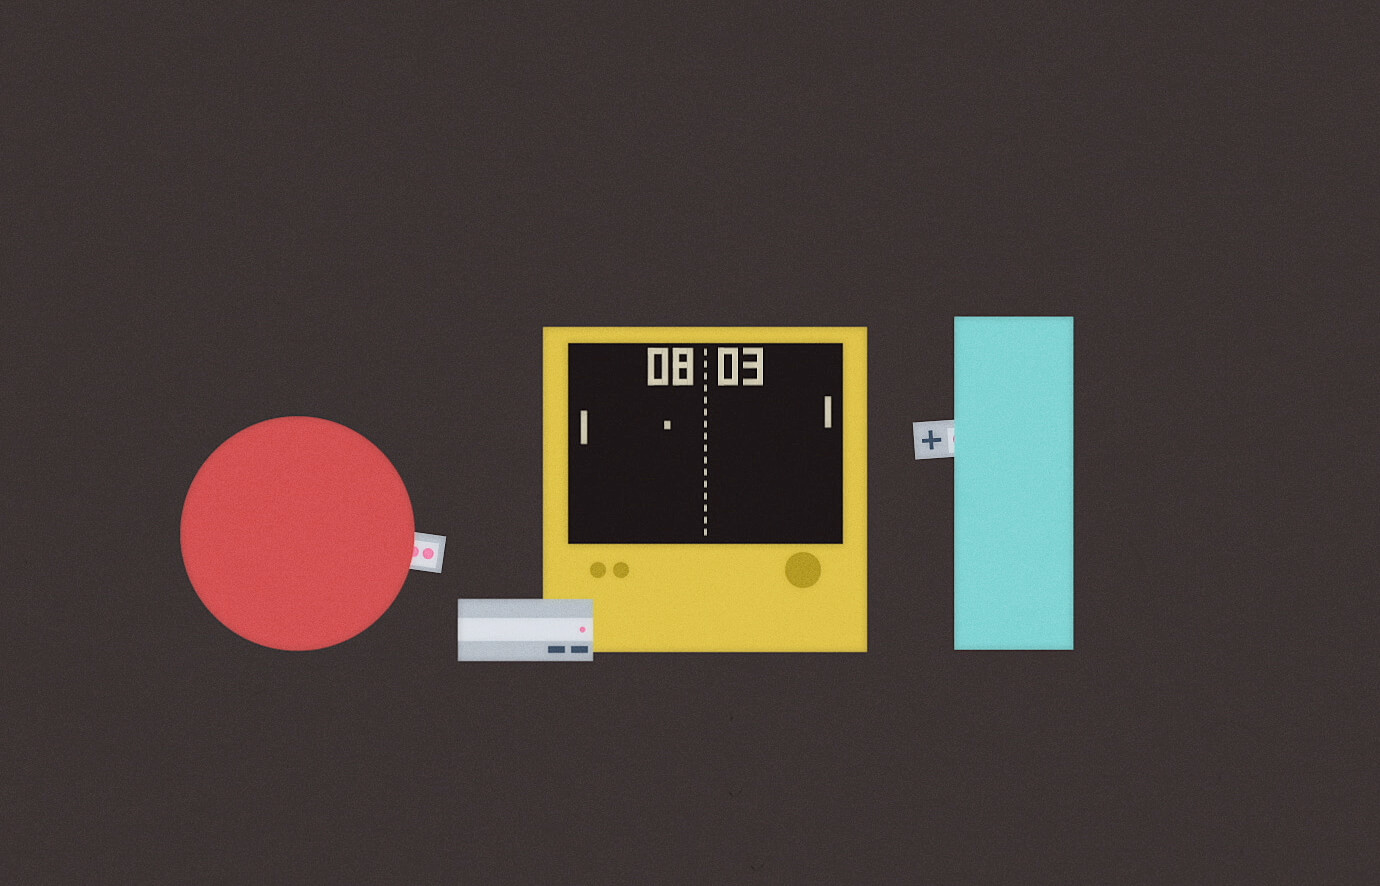 Series of short animations about a circle and rectangle for Blind's core values